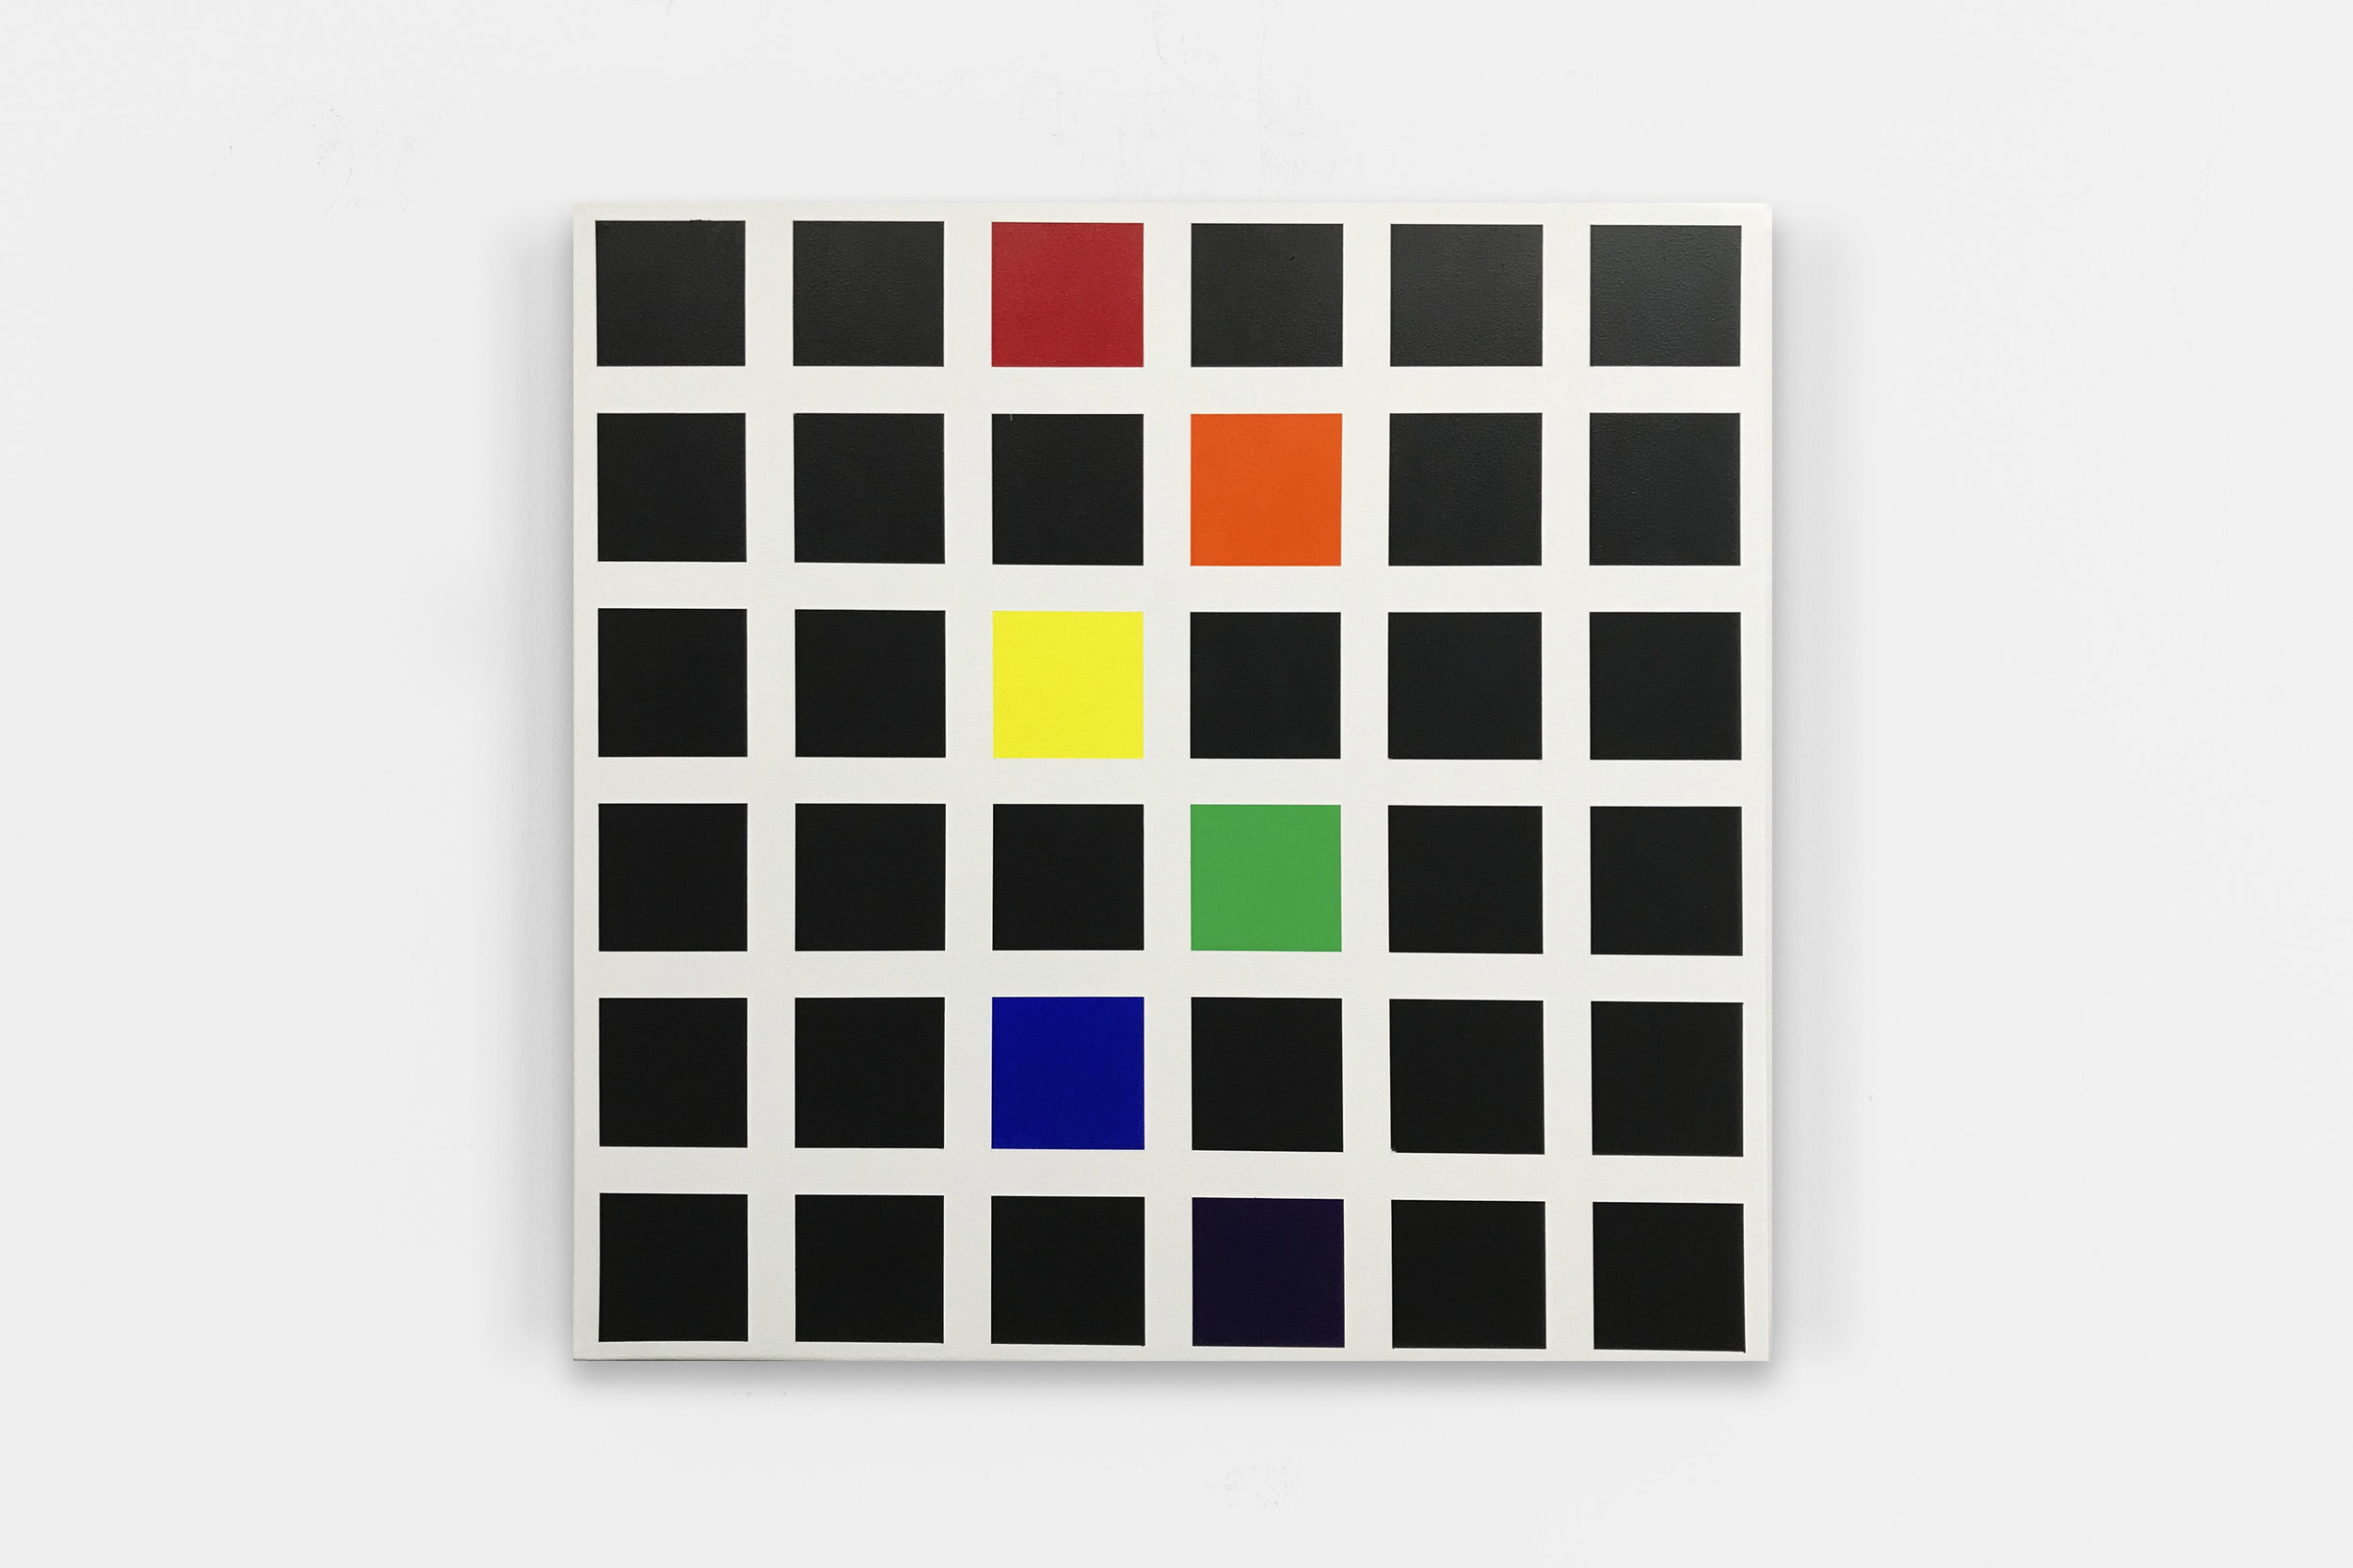 44408,  2017 Acrylic on canvas over panel 24 x 24 inches